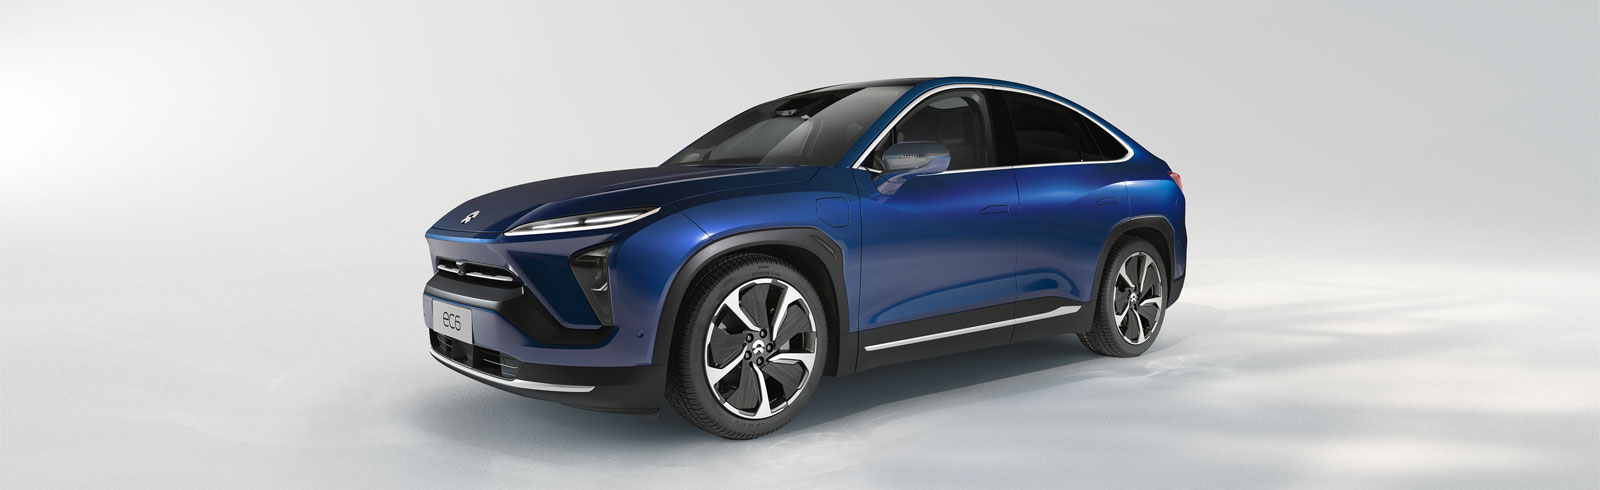 GAC Group plans to invest USD 1 billion in NIO